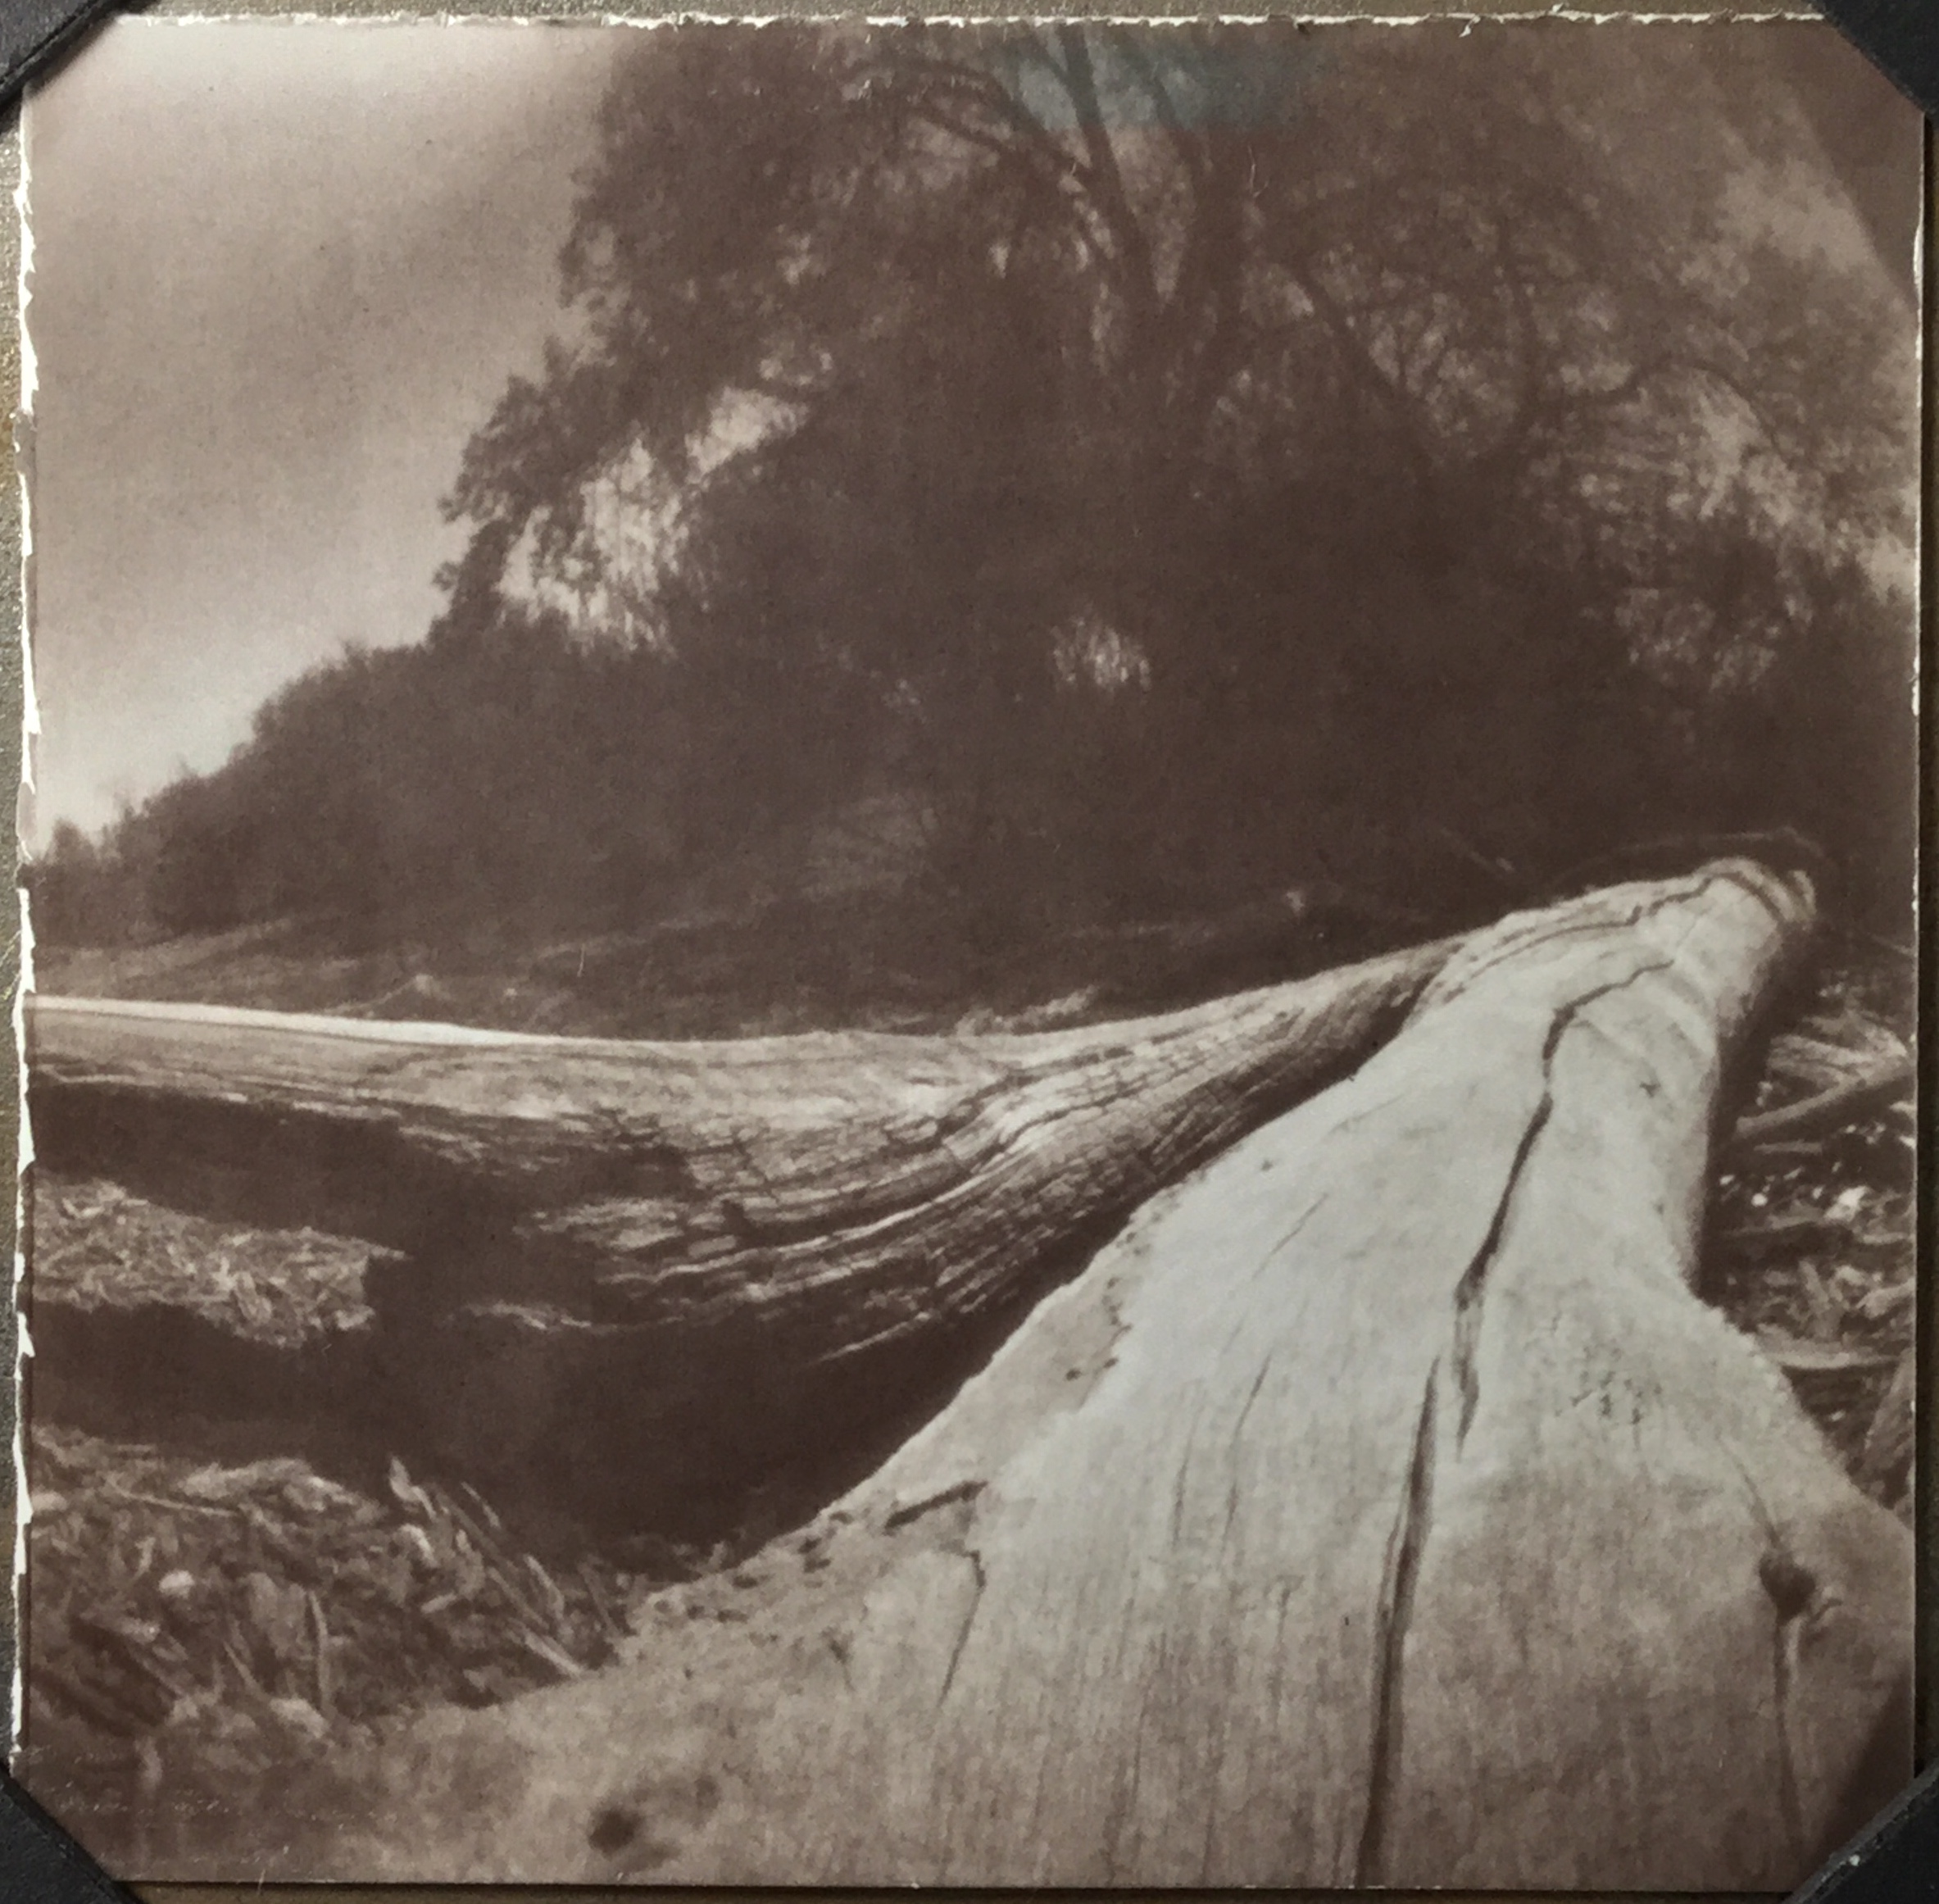 Rio Grande Bosque, Pinhole Camera, Harman Direct Positive Paper